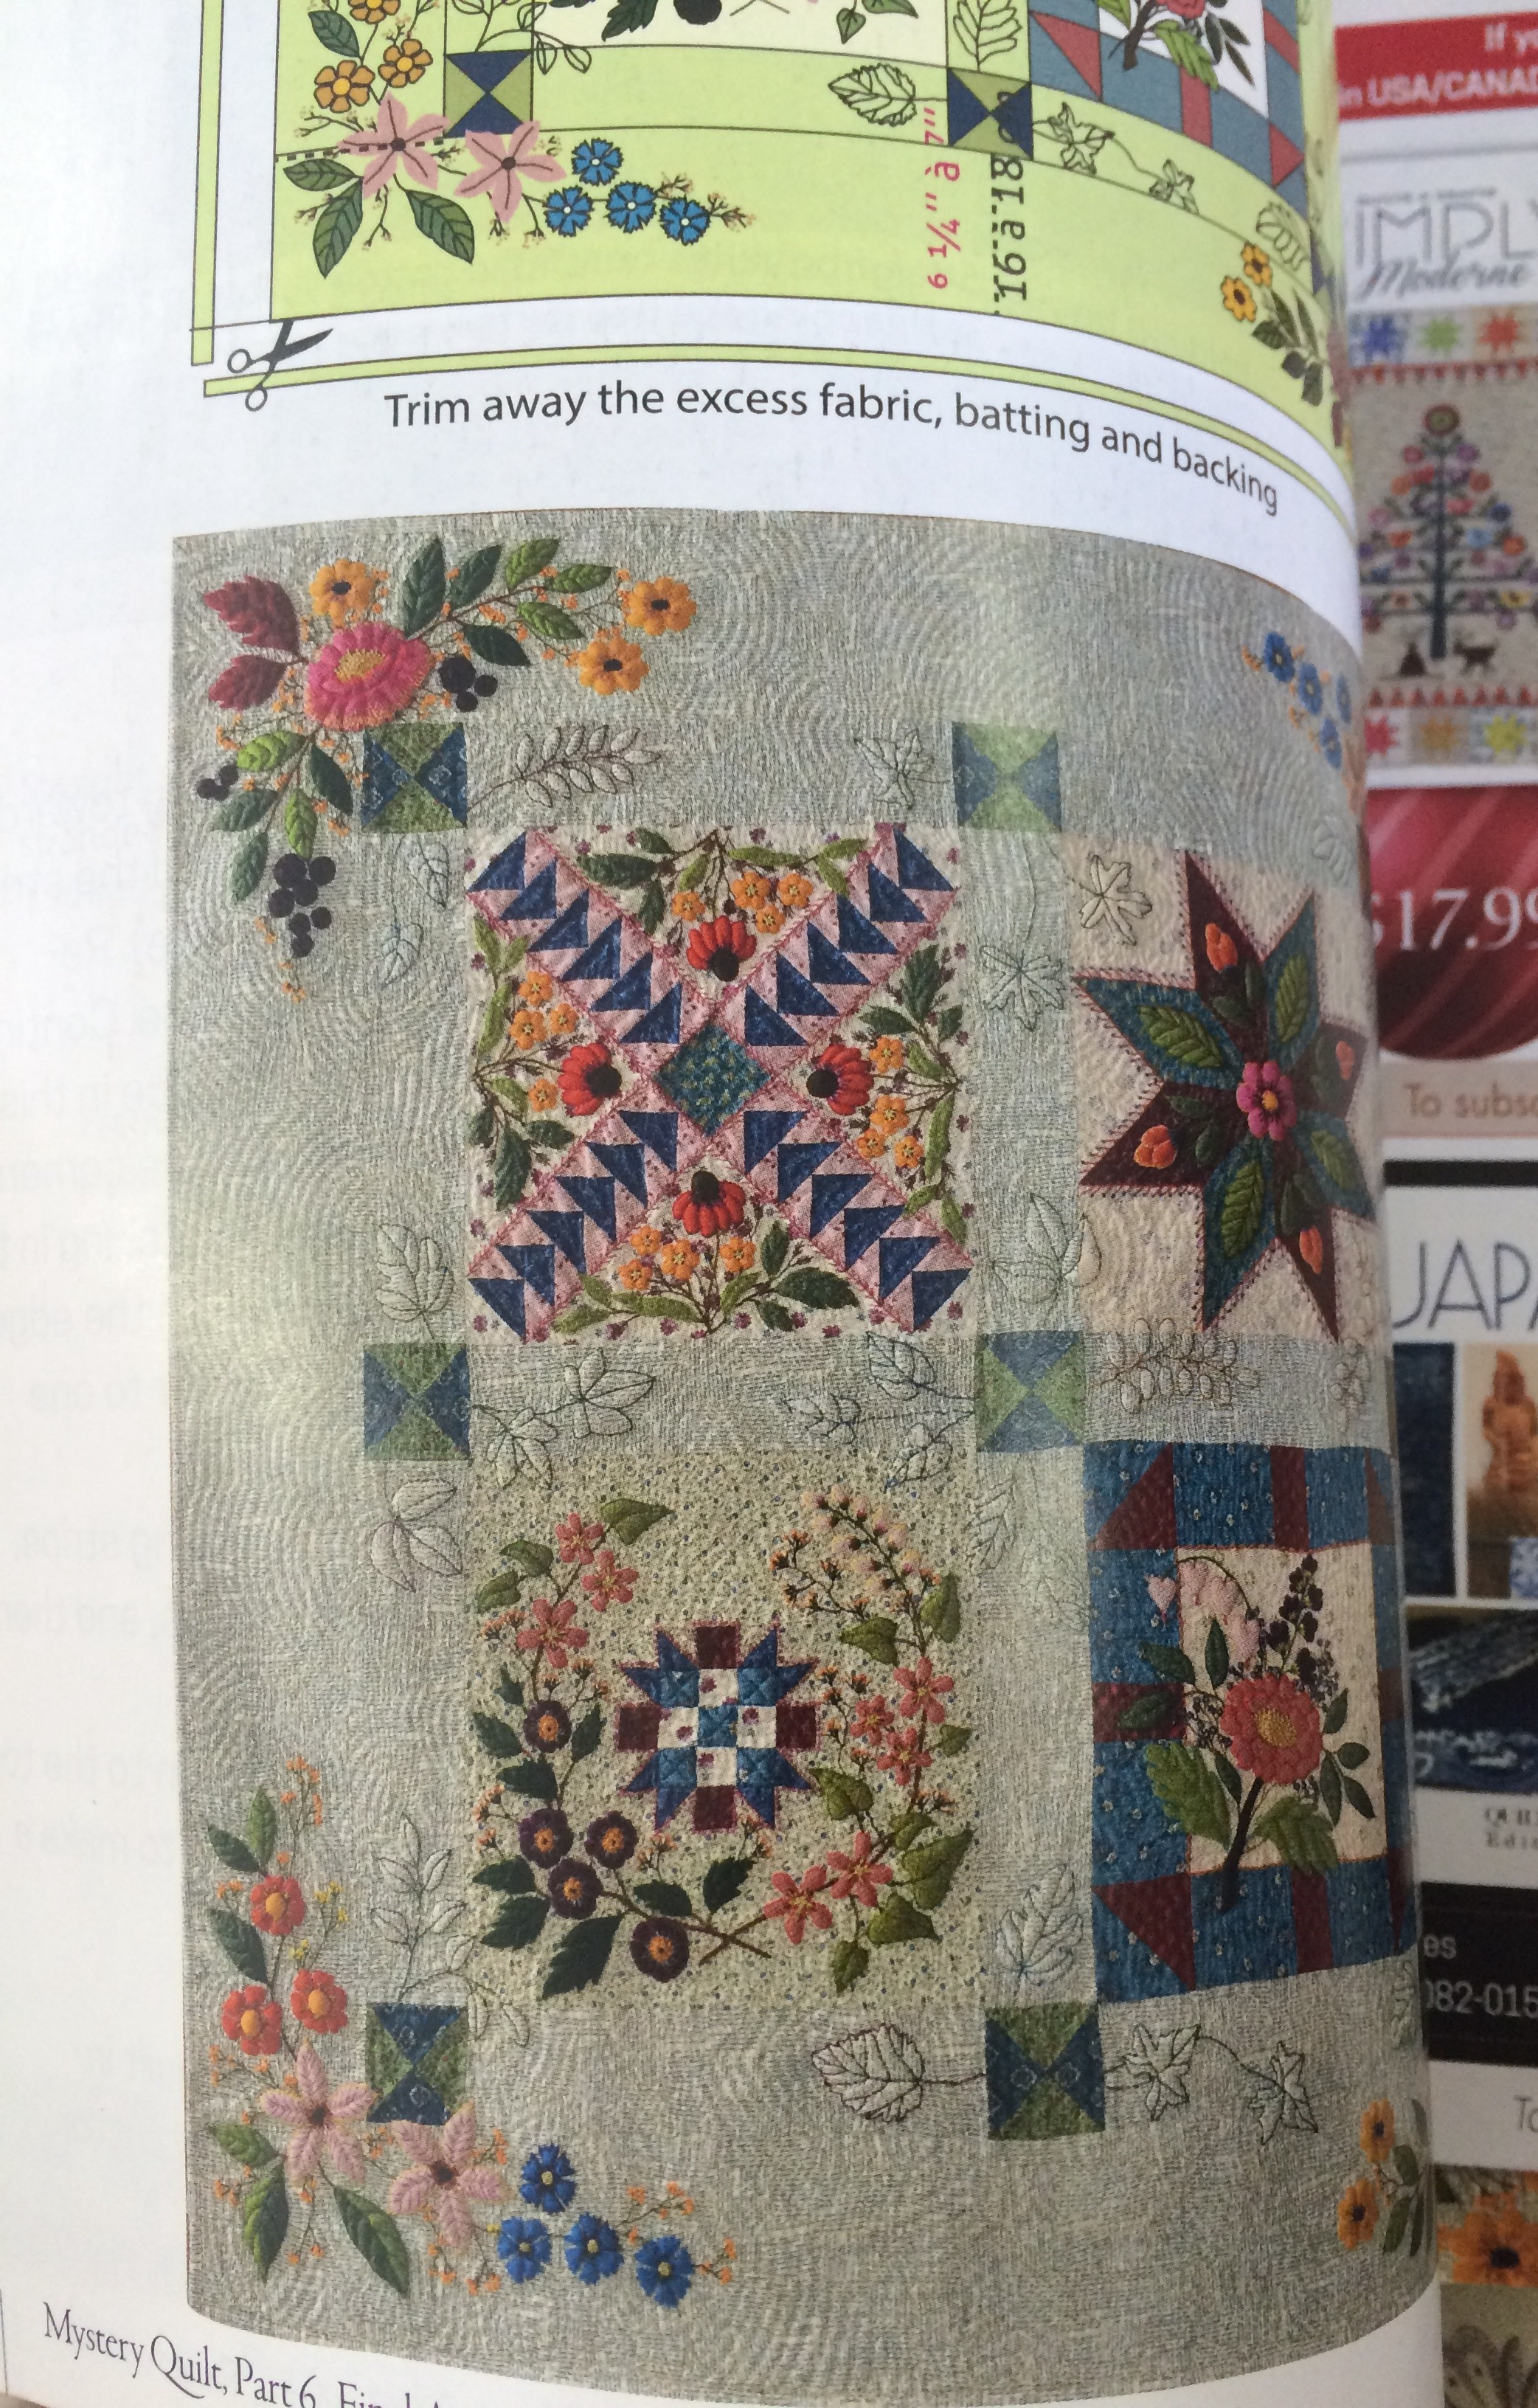 A picture of Quitmania's mystery quilt, gorgeous!